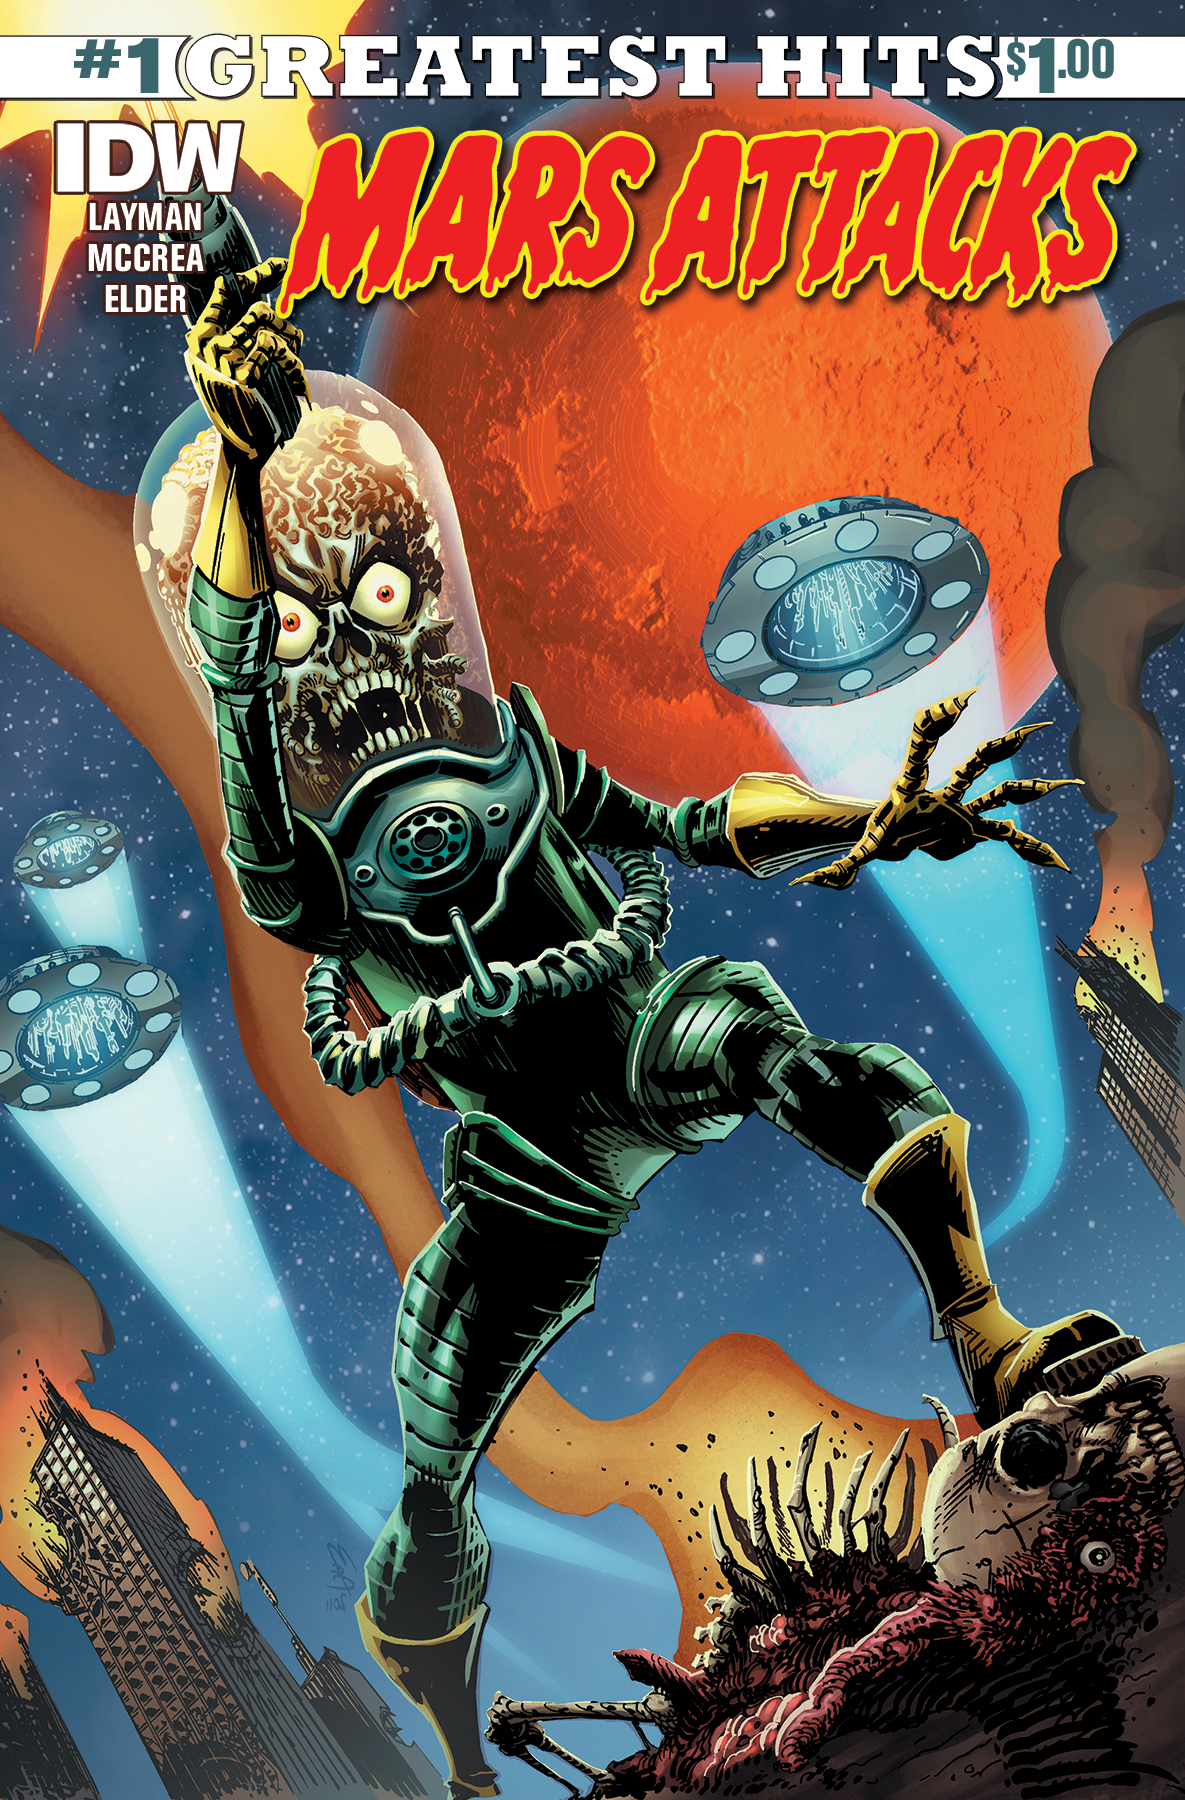 MARS ATTACKS #1 IDW GREATEST HITS